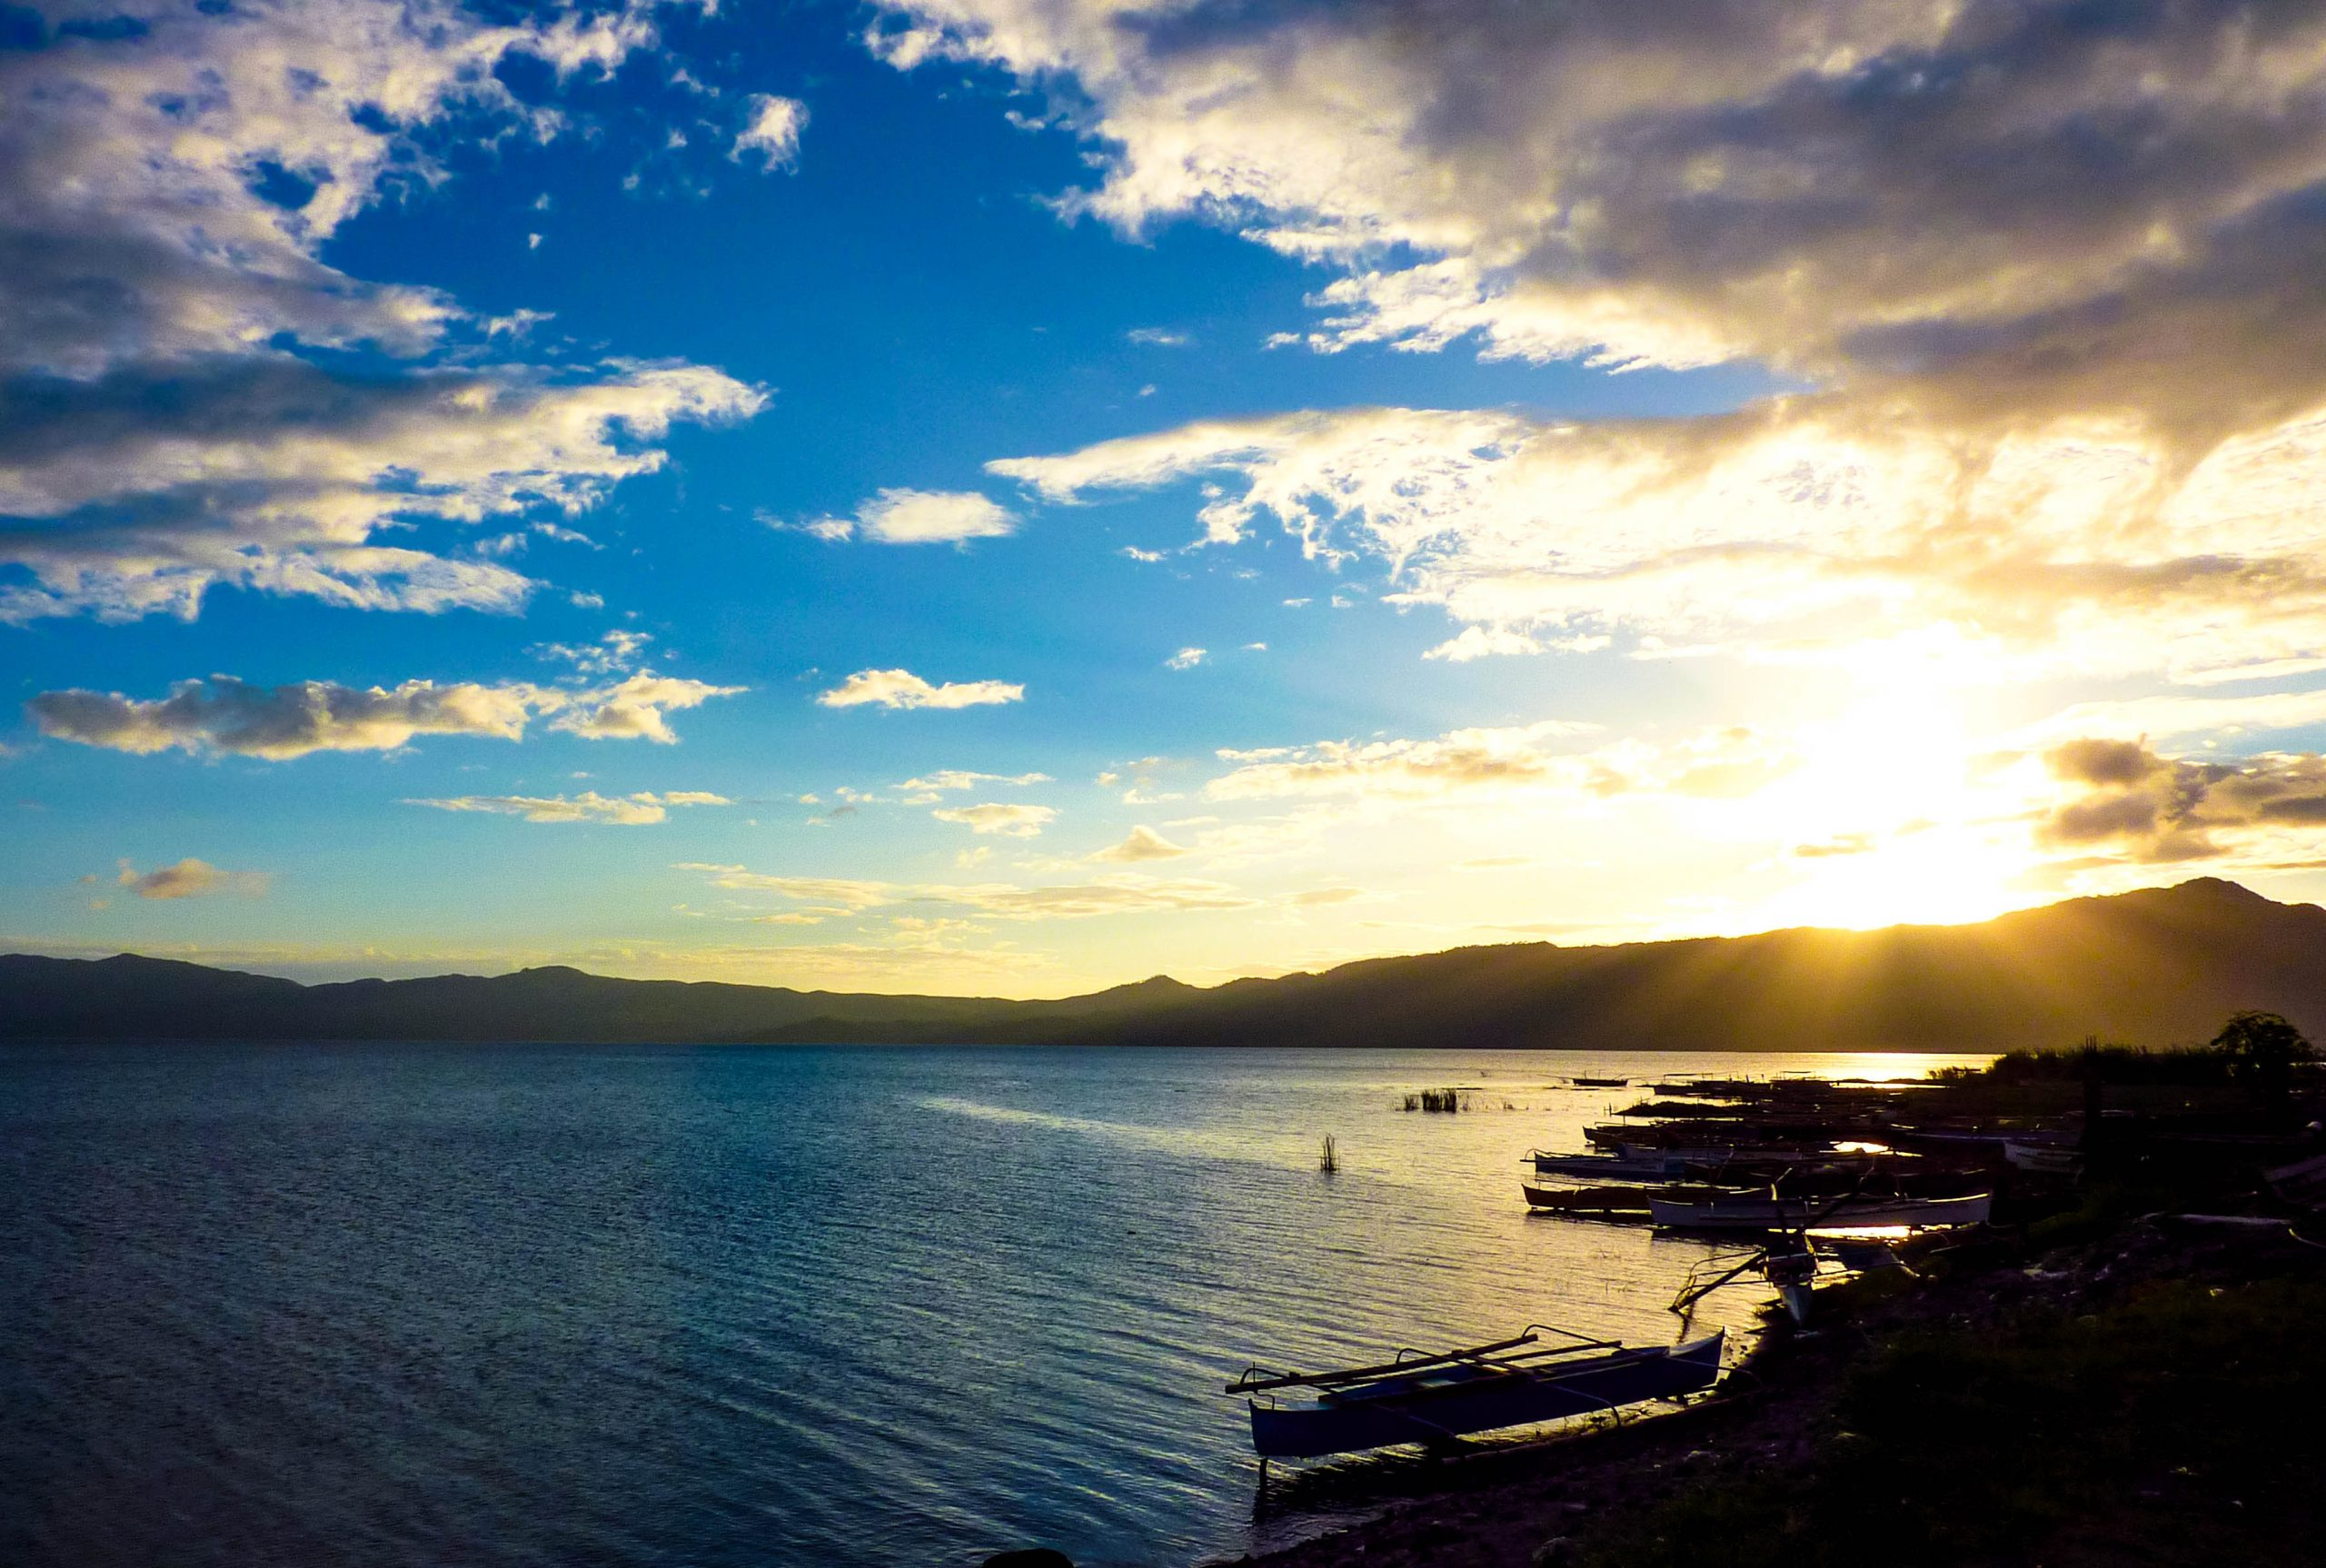 Sunrise illuminates a vast body of water (Lake Mainit, to be specific, one of the largest lakes in the Philippines) beneath a blue sky partially covered with clouds